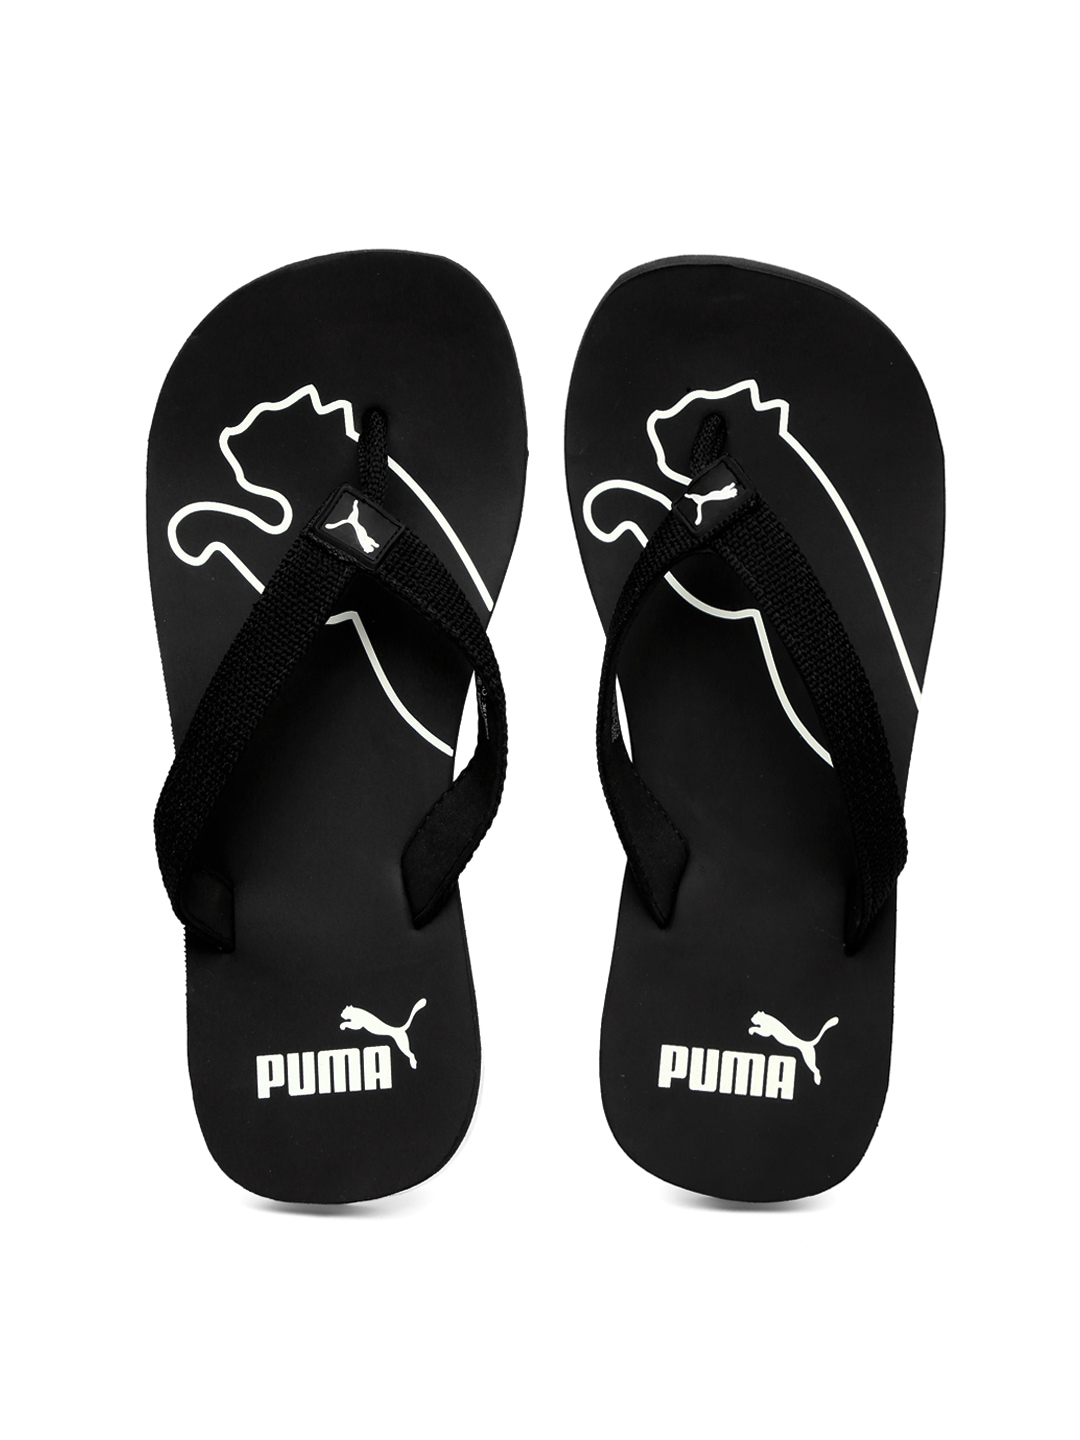 online shopping puma slippers on sale   OFF75% Discounts 8ad3adb0a